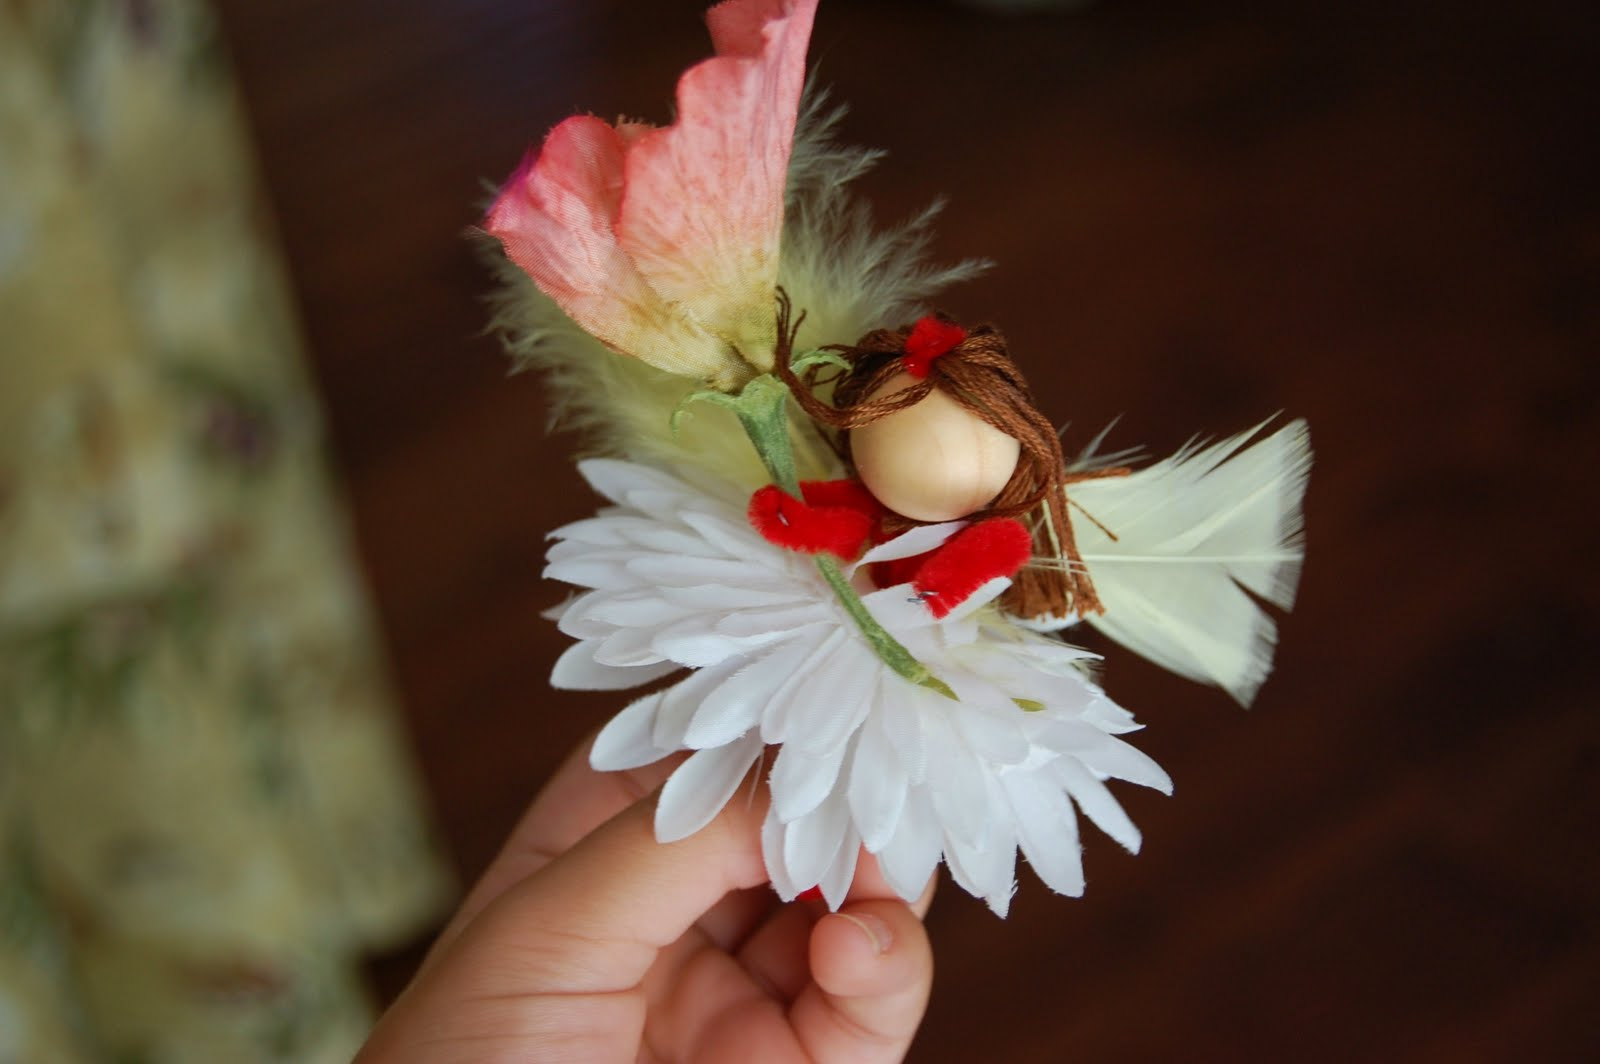 Fairy Crafts Silk Flowers http://recycledawblog.blogspot.com/2012/07/how-to-make-flower-fairies.html